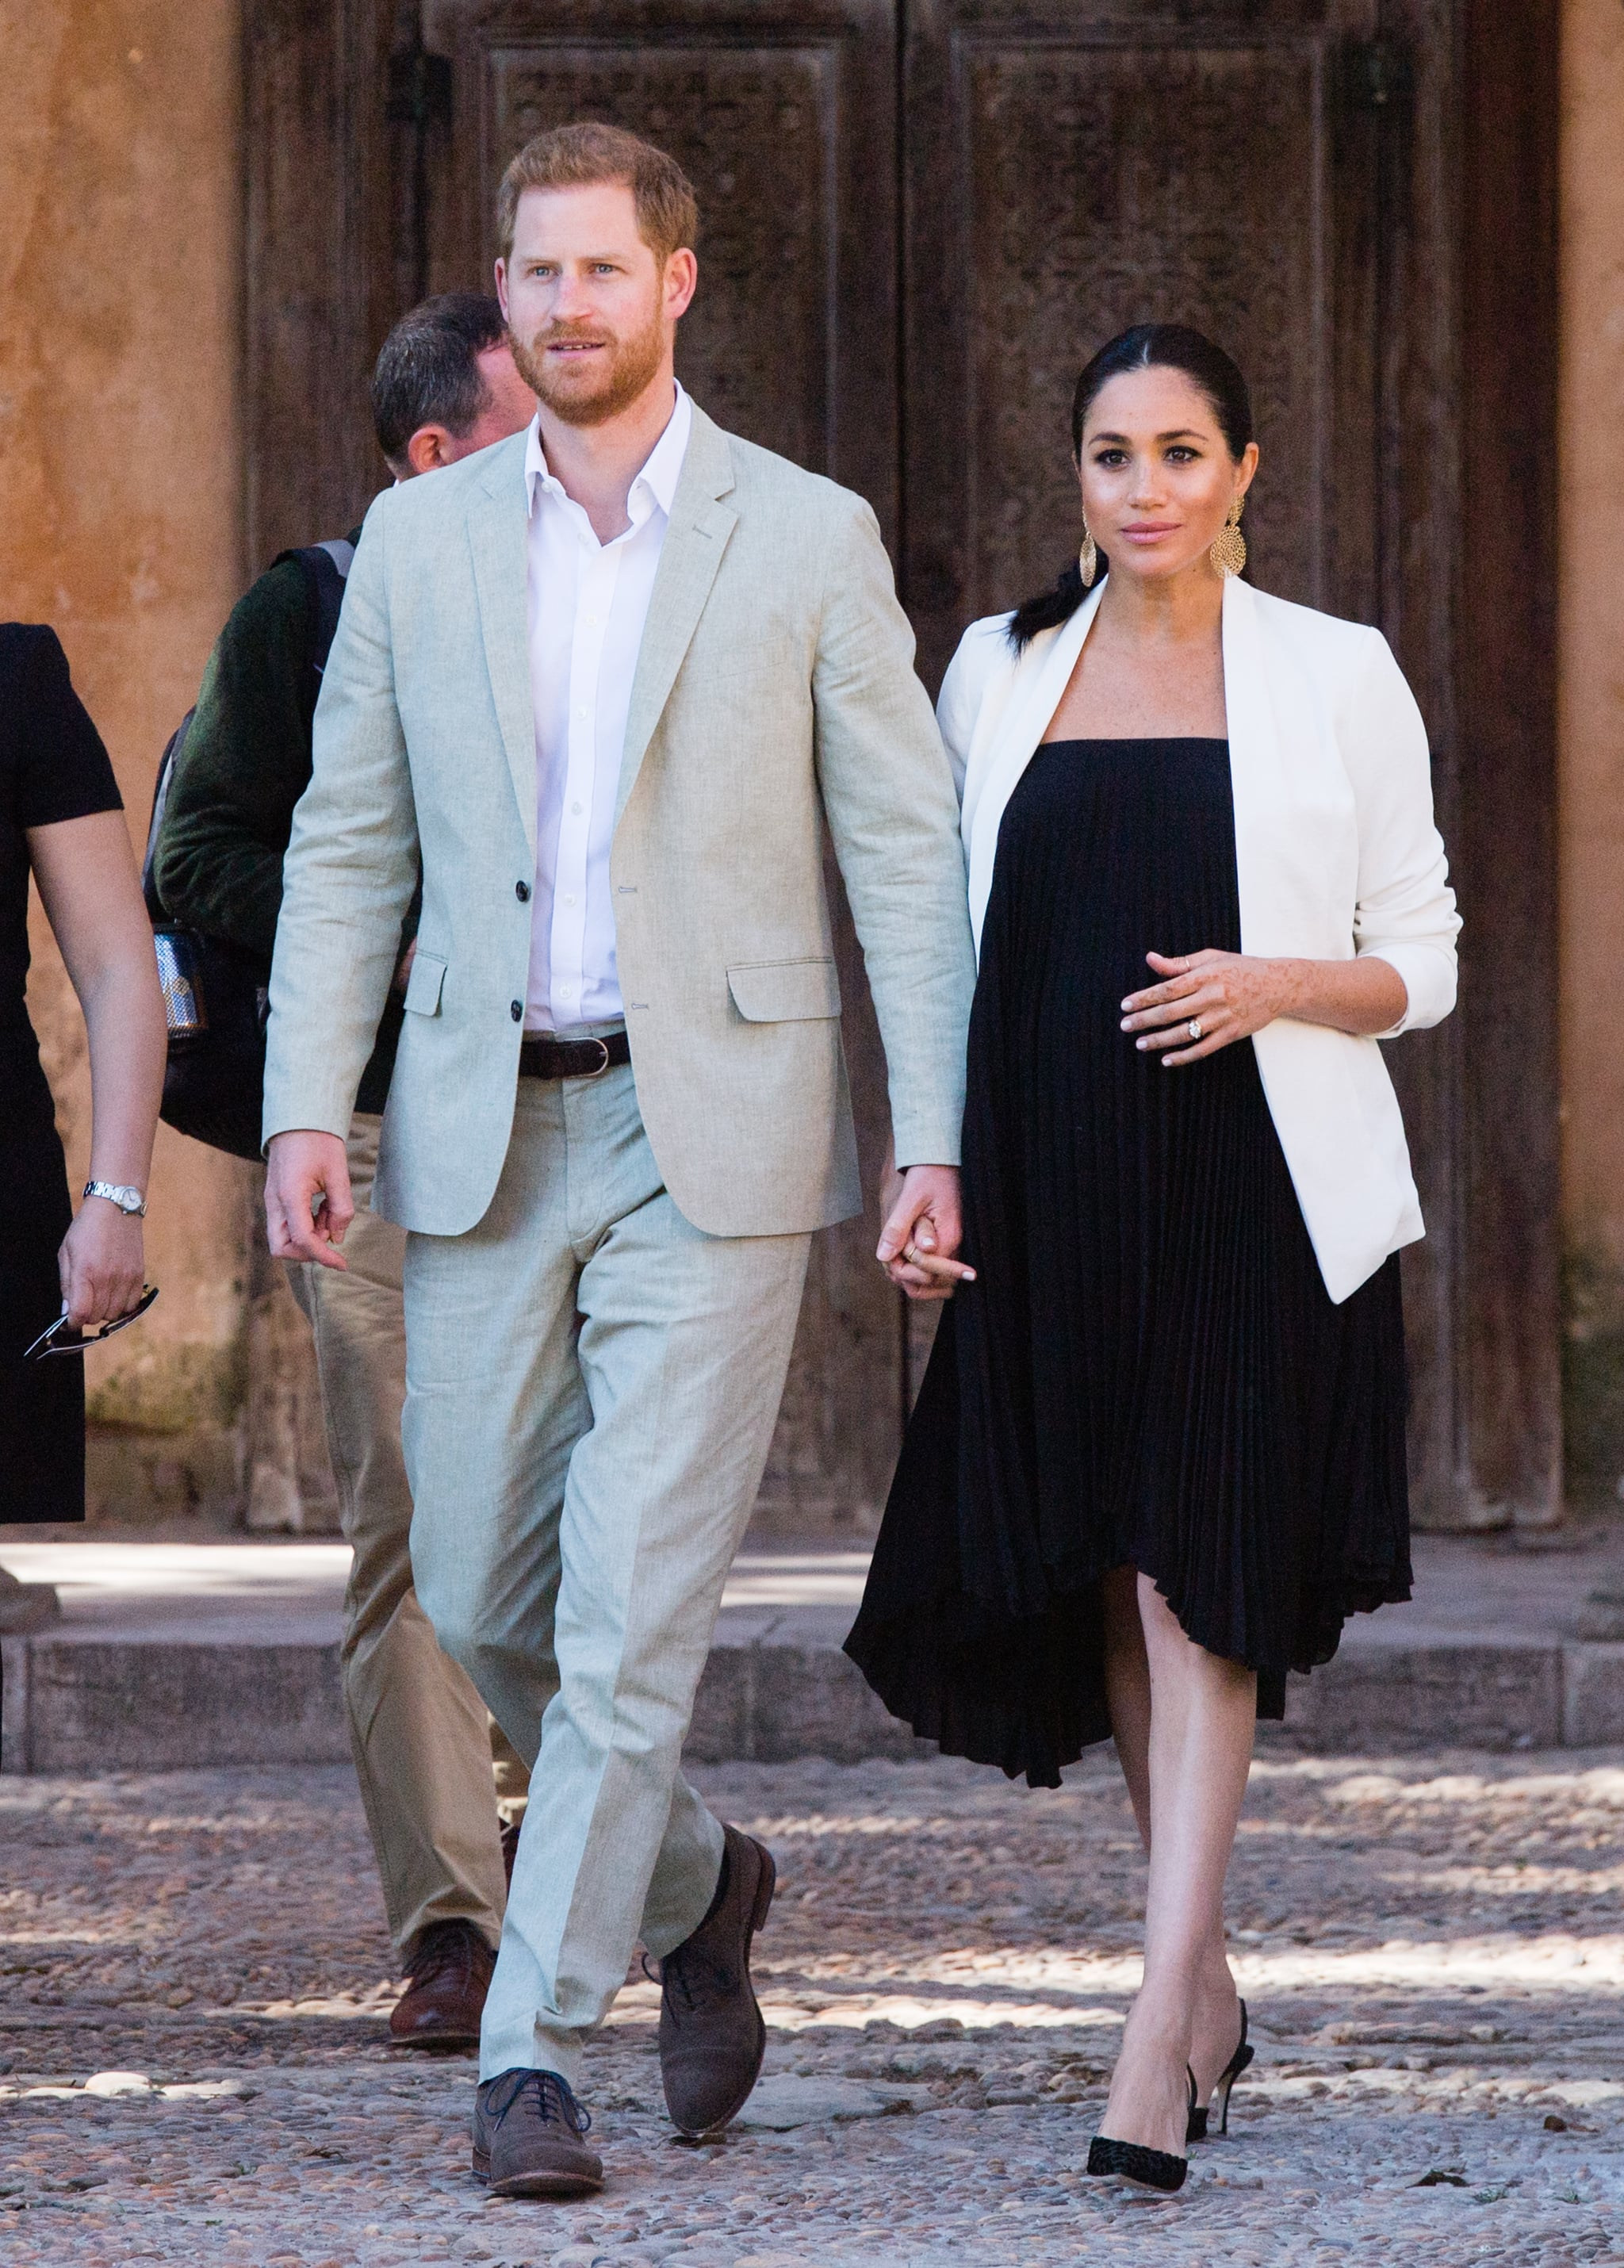 RABAT, MOROCCO - FEBRUARY 25:   Prince Harry, Duke of Sussex and Meghan, Duchess of Sussex visit the Andalusian Gardens to hear about youth empowerment in Morocco from a number of young social entrepreneurs on February 25, 2019 in Rabat, Morocco.  (Photo by Samir Hussein/WireImage)